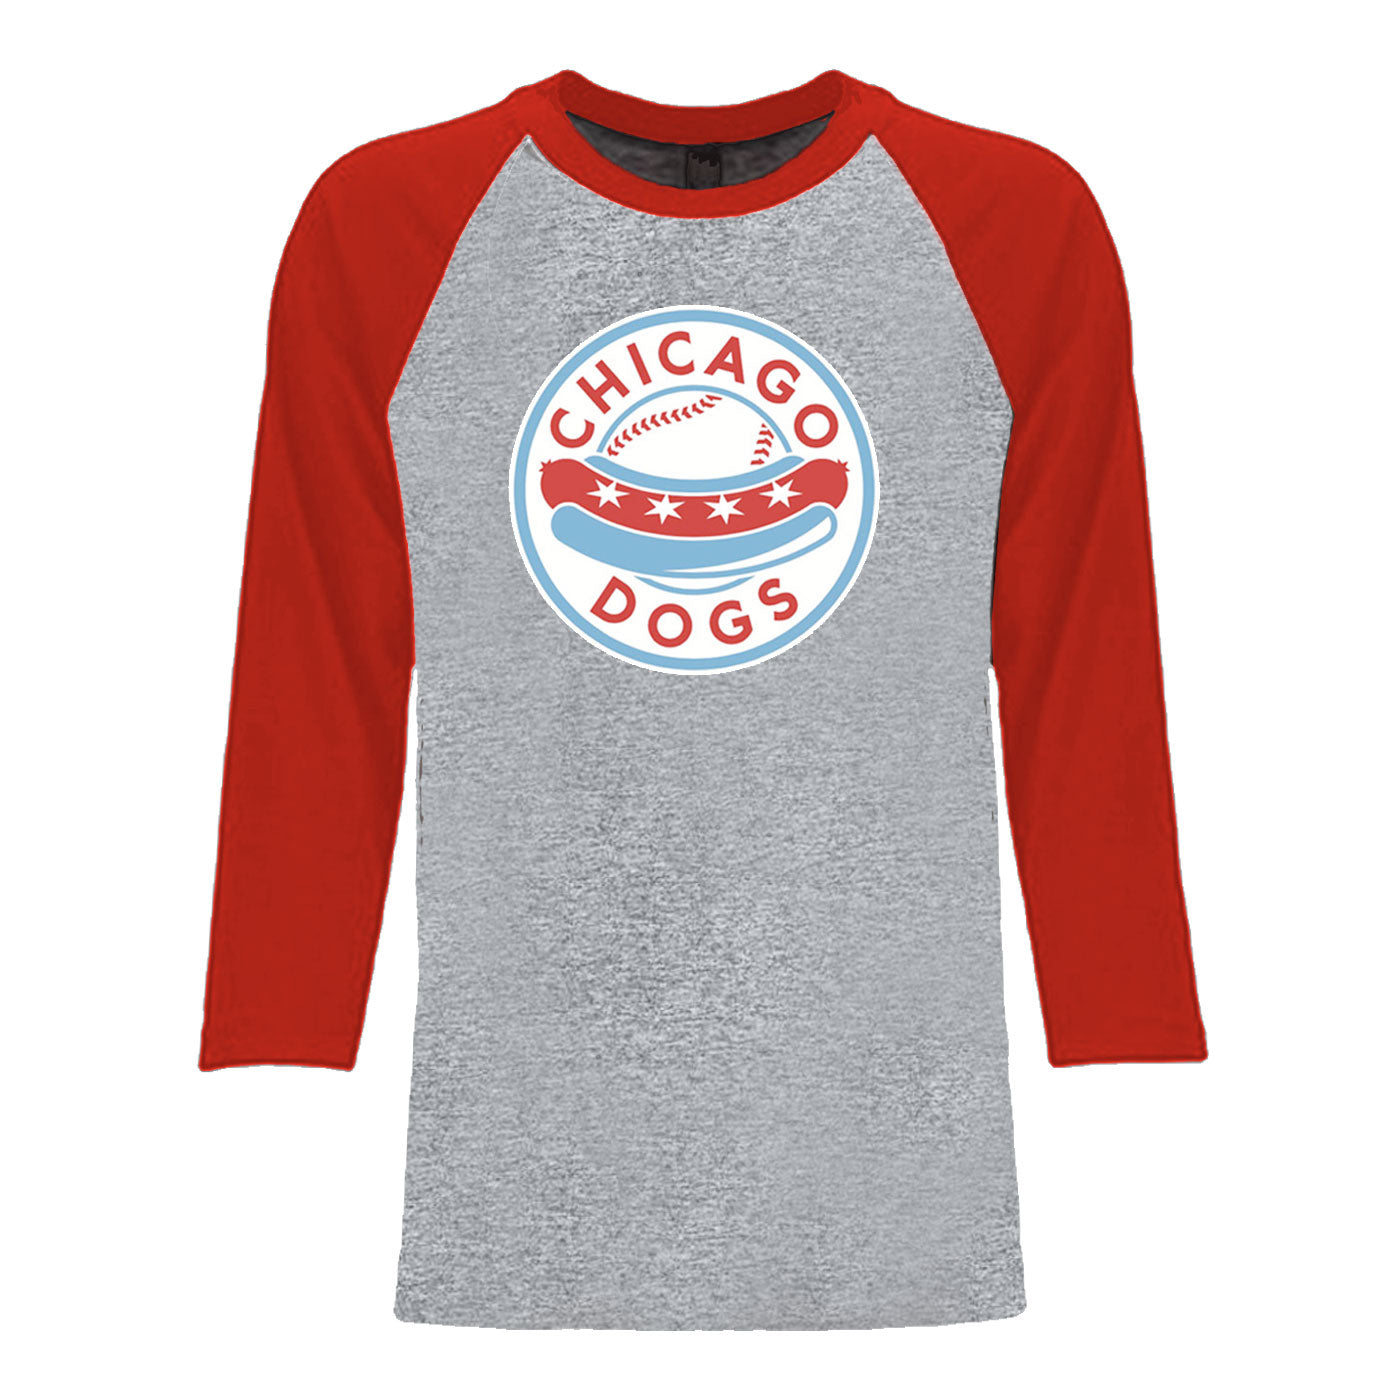 Chicago Dogs Mens Primary Logo 3/4 Sleeve Raglan Baseball Tee - Grey/Red